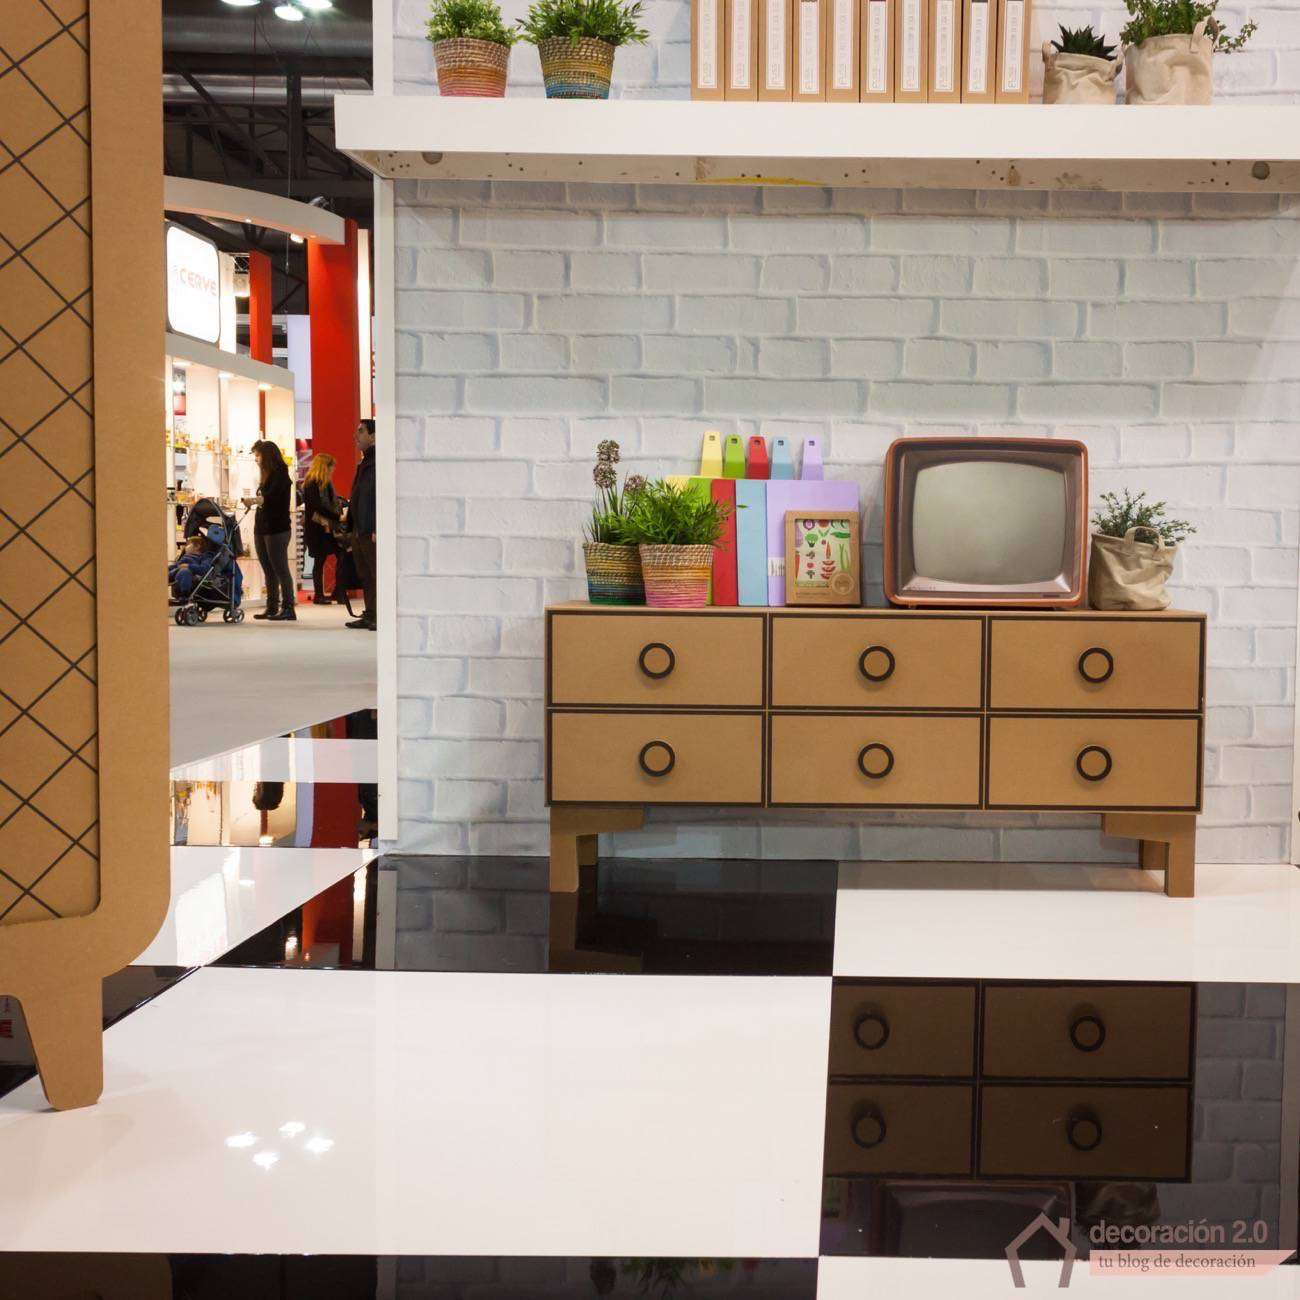 Cardboard home furnishings on display at HOMI, home international show in Milan, Italy